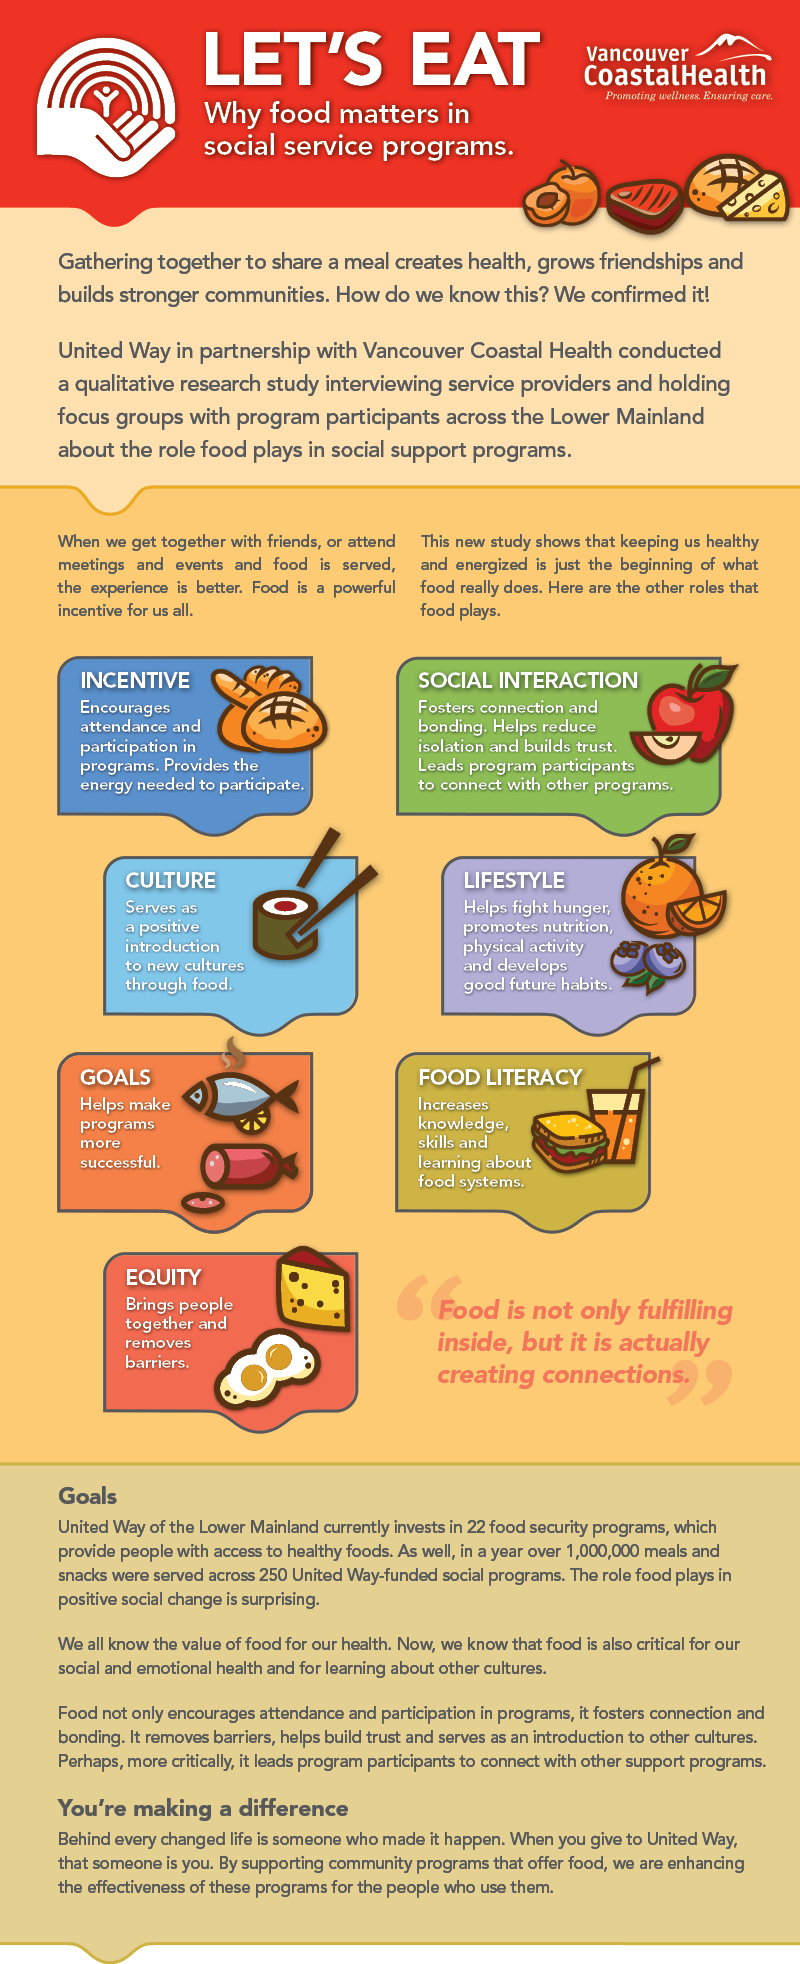 A graphic showing all the ways that food is incorporated into social service programs